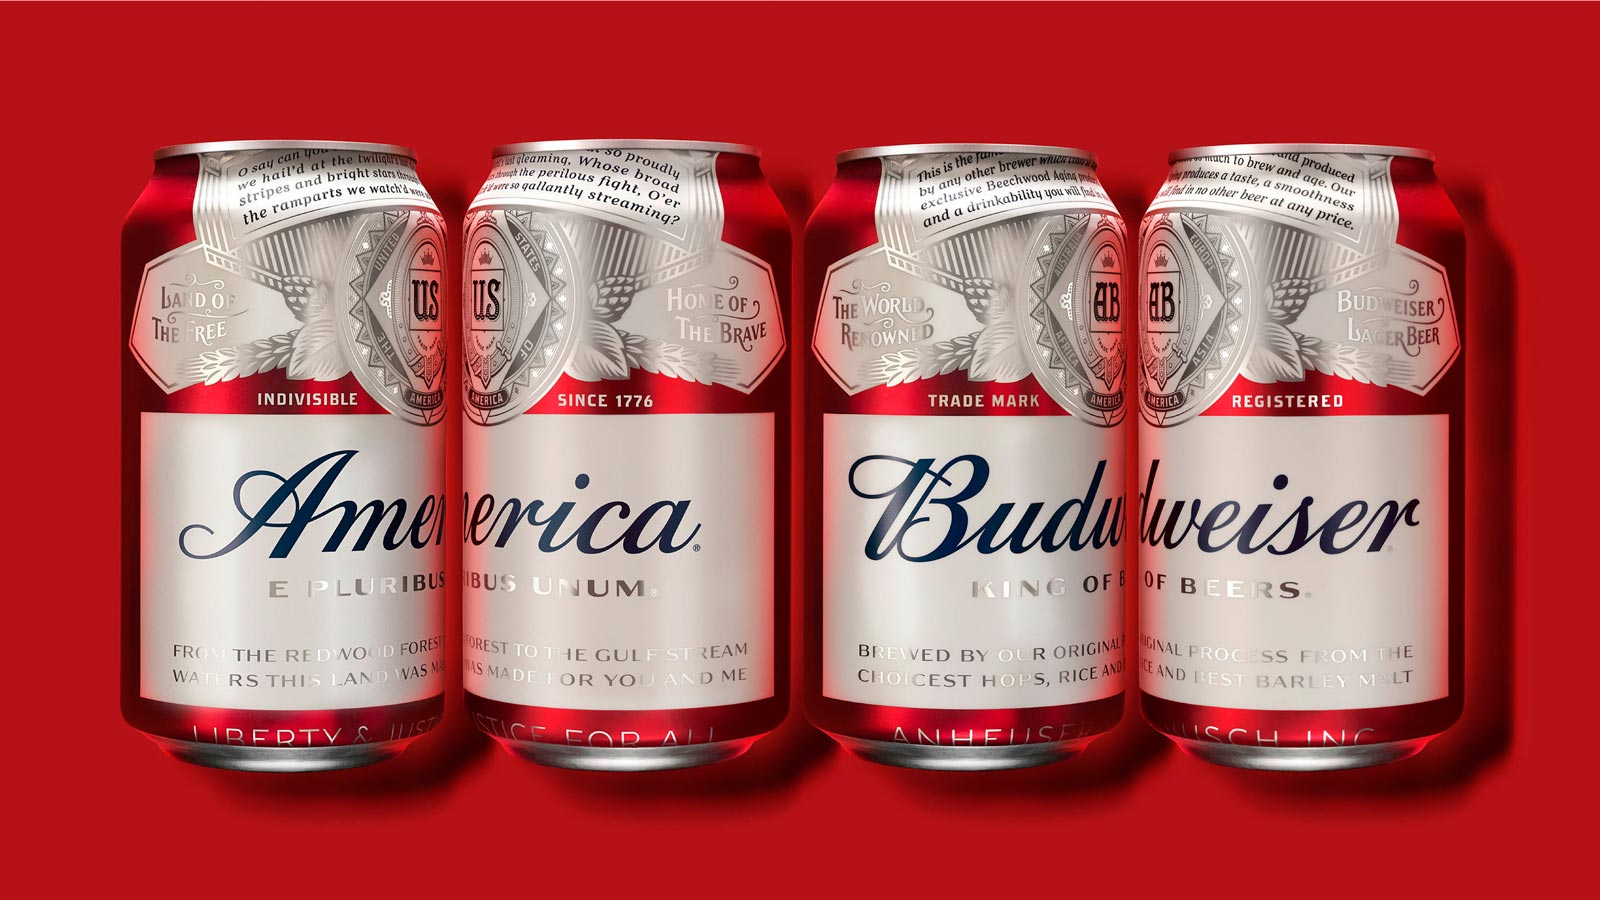 Budweiser America 4 cans, A Curate's Egg